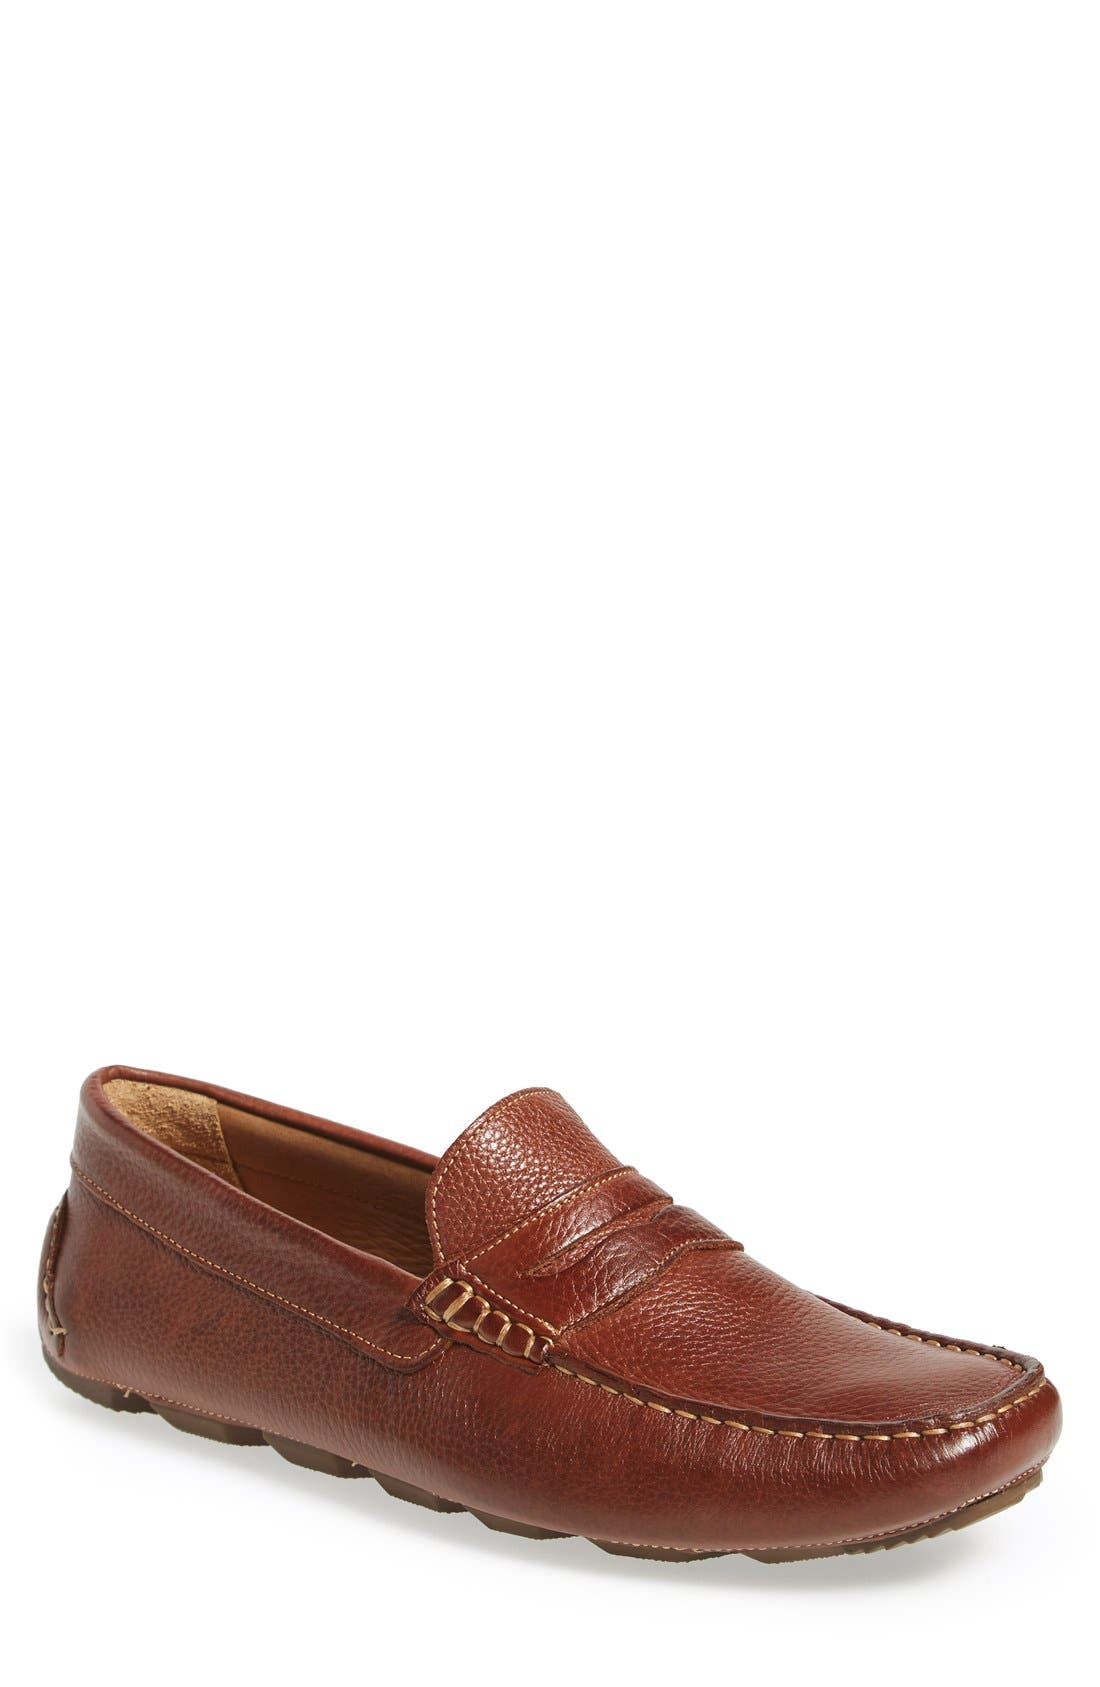 'Bermuda' Penny Loafer,                             Main thumbnail 1, color,                             TAN LEATHER